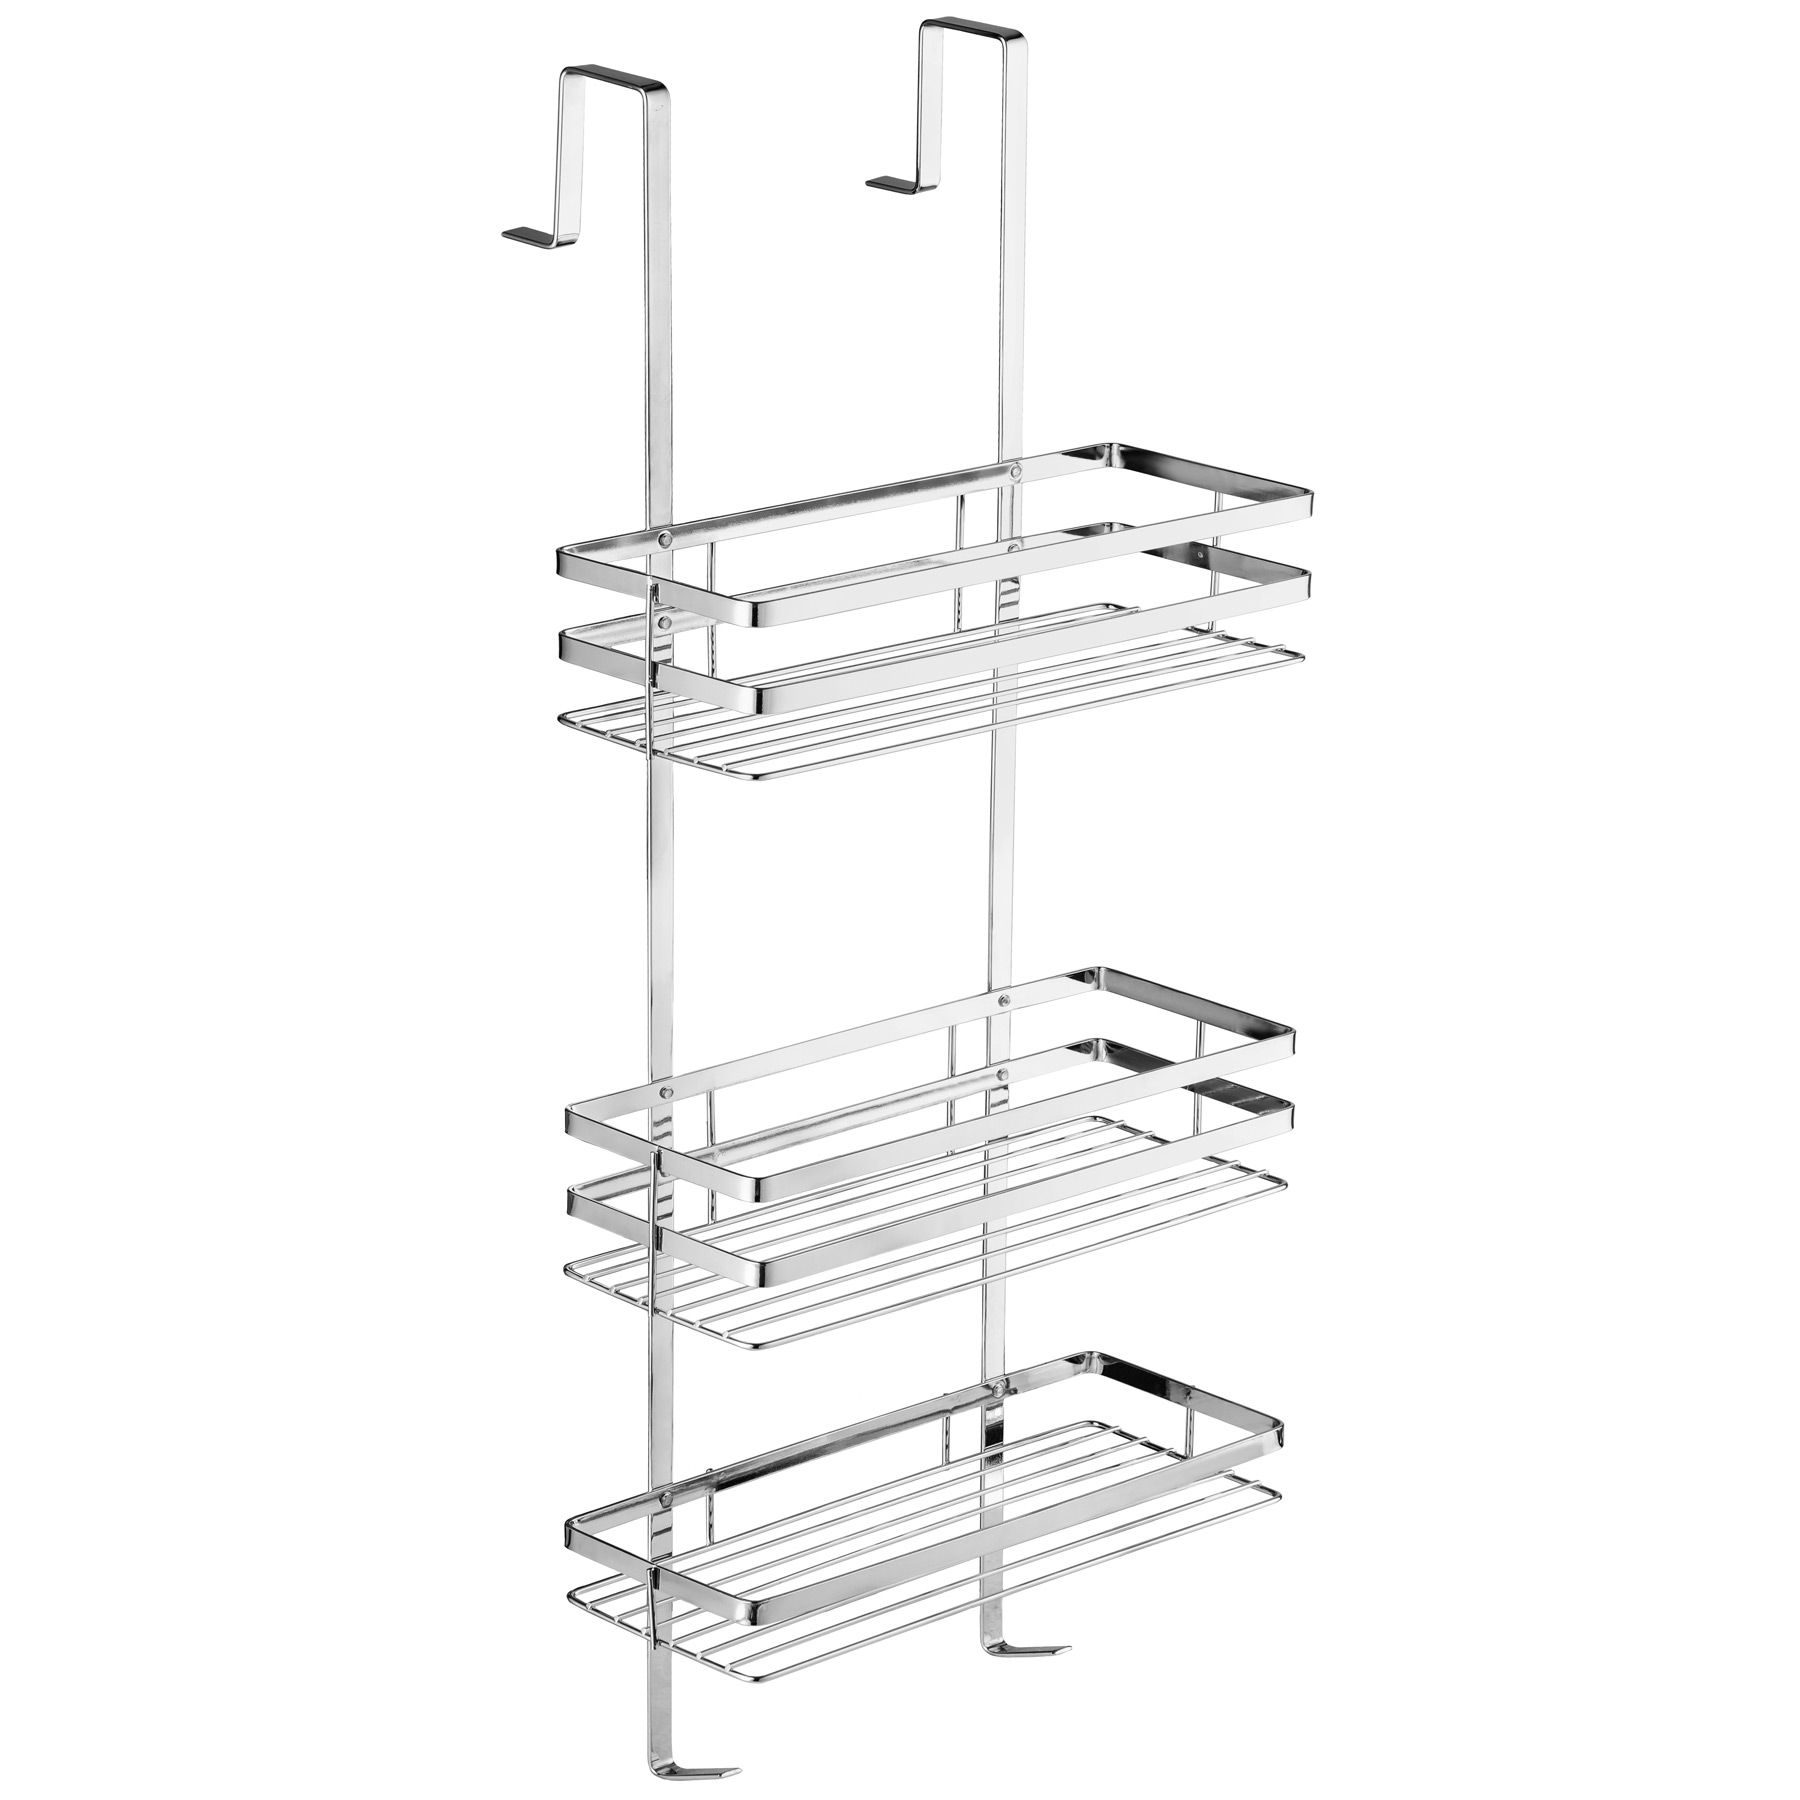 3 Tier Stainless Steel Hanging Shower Bathroom Caddy Shelves Storage Shelf Ebay